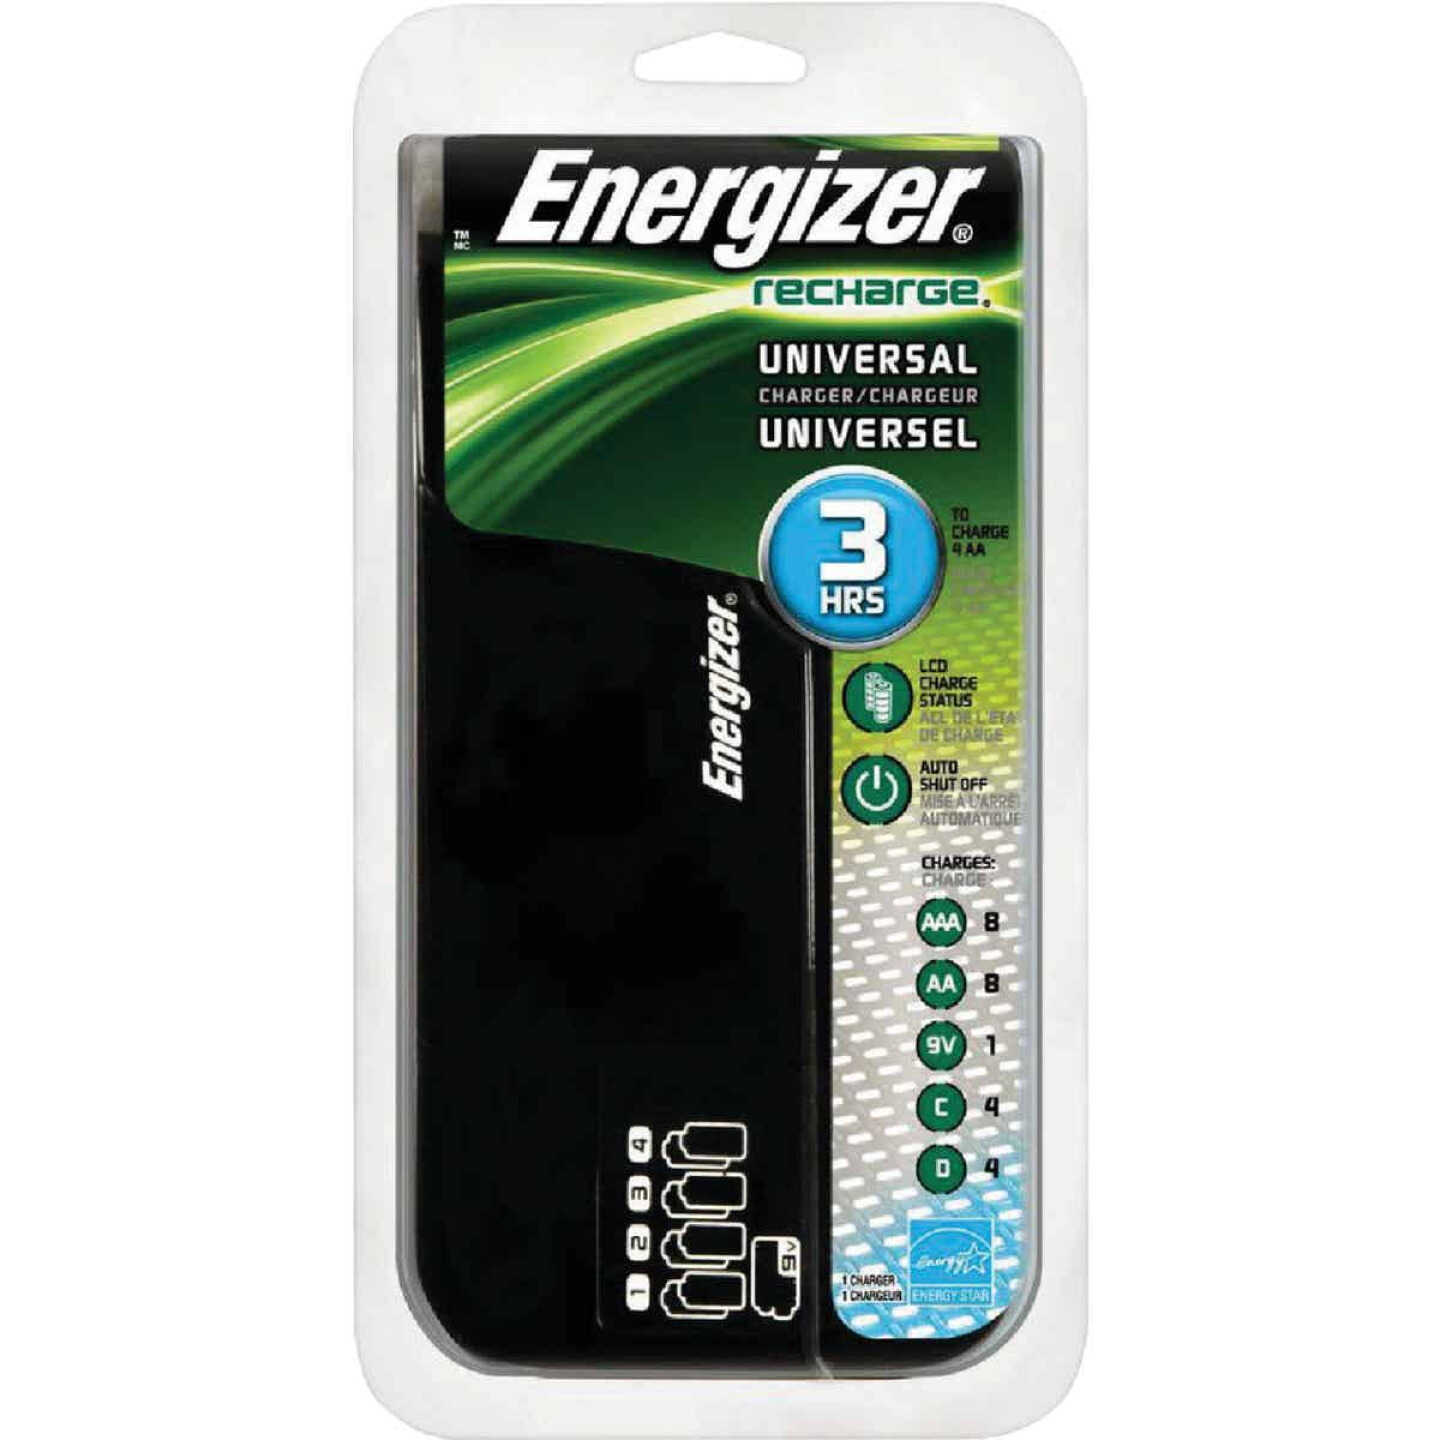 Energizer (2 or 4) AA, (2 or 4) AAA, (2 or 4) C, (2 or 4) D, (1 or 2) 9V NiMH Recharge Universal Battery Power Station Image 1